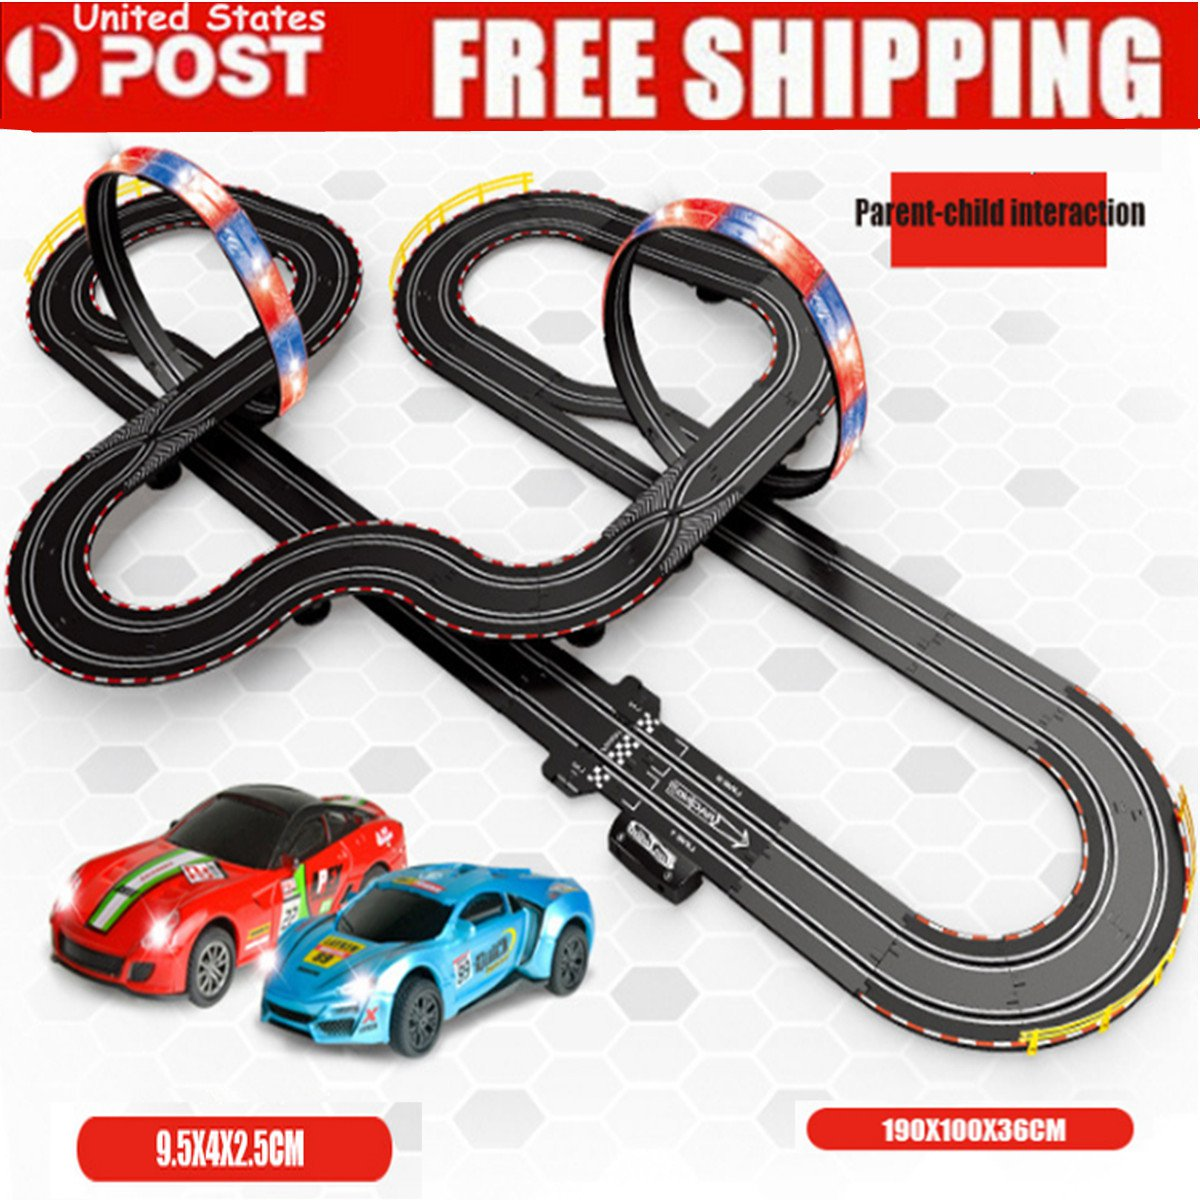 Racing Track Kit Set Loops Electric Slot Cars Race Stunt Loop 2 Ho Car Power Wiring Detail Image